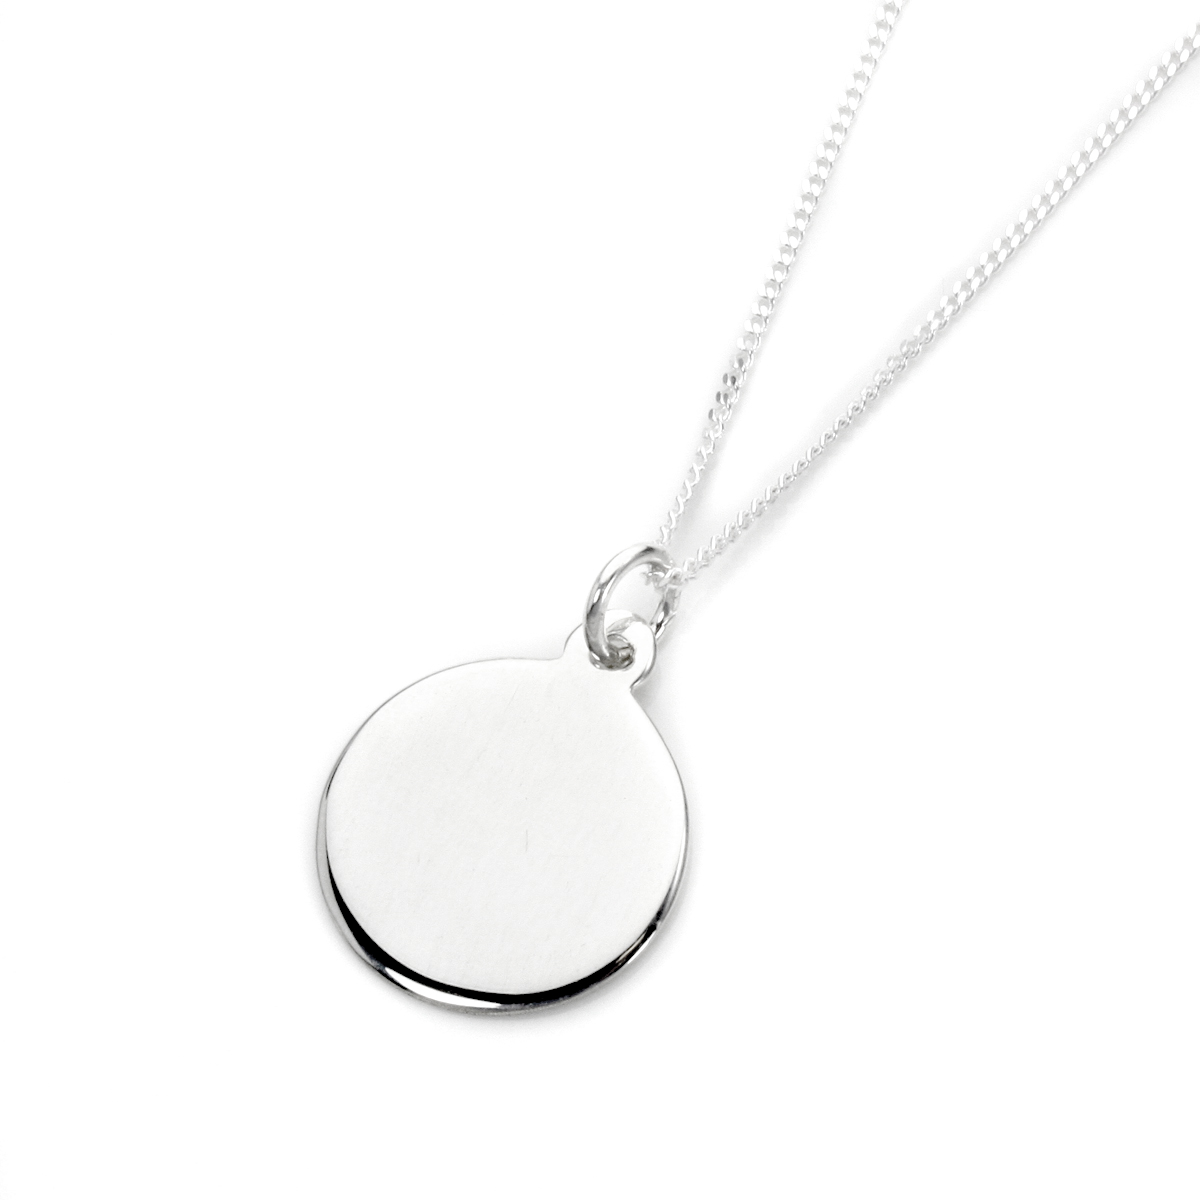 An image of Sterling Silver Engravable Round Pendant